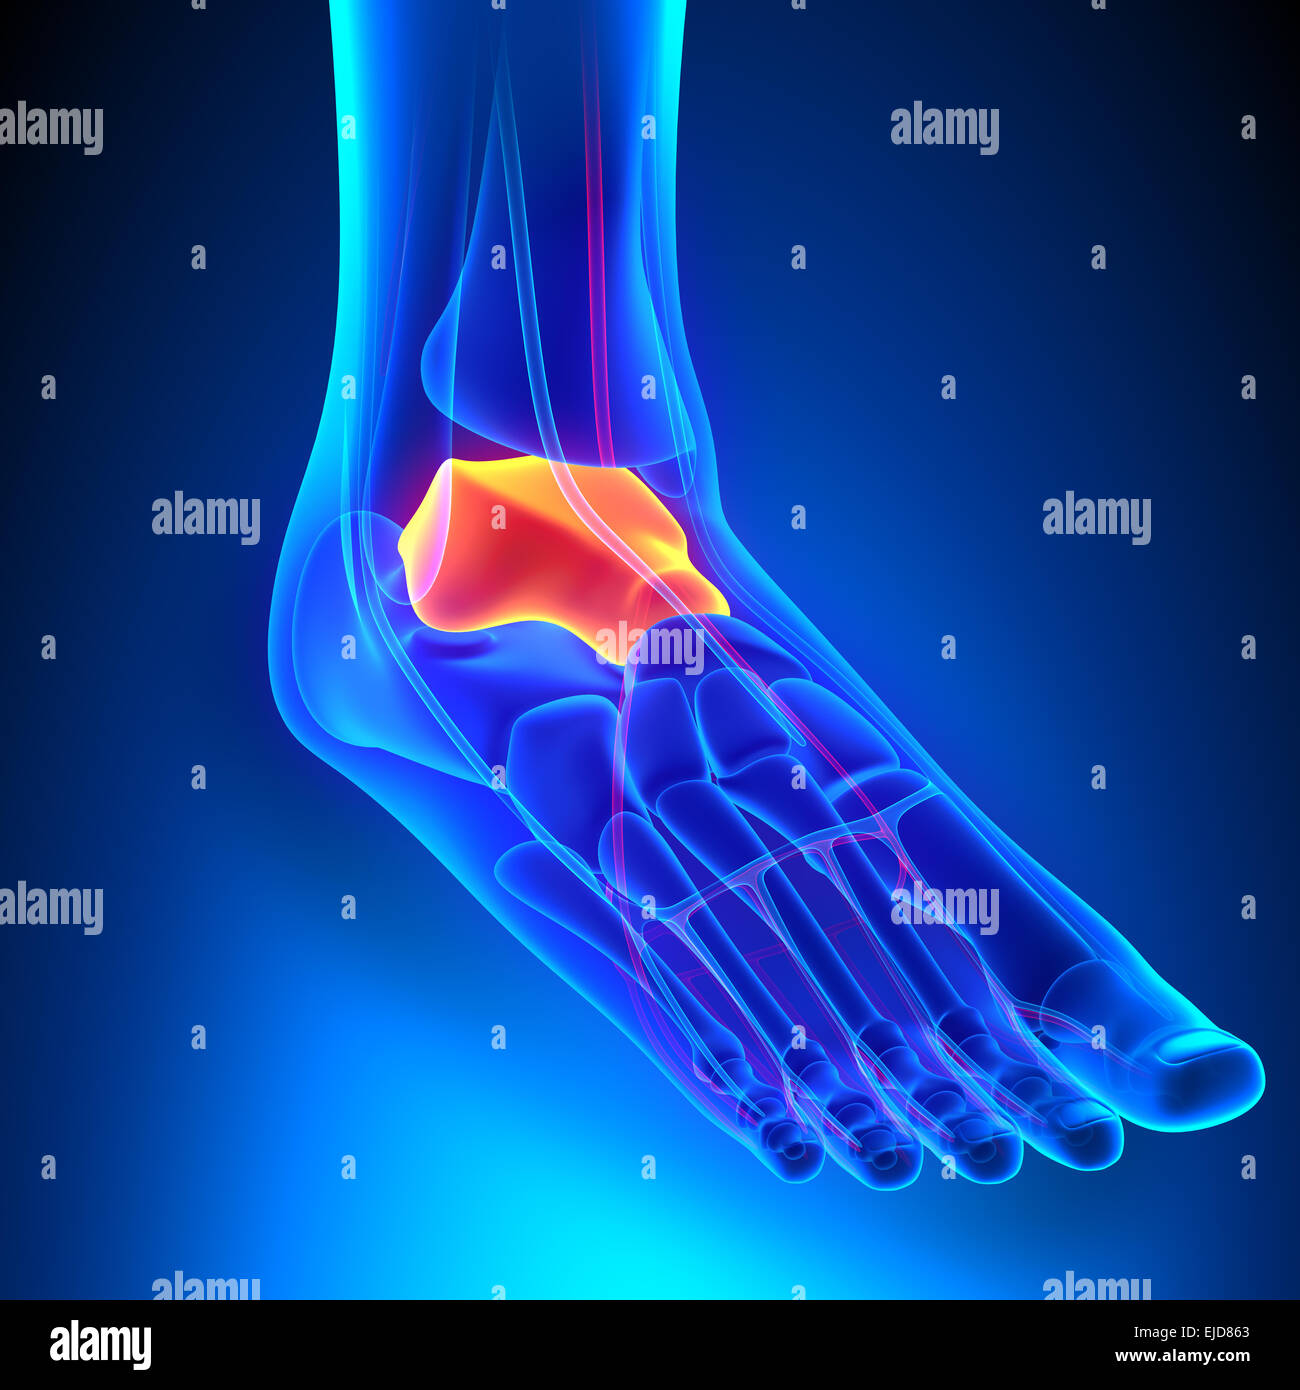 Talus Bone Anatomy with Circulatory System Stock Photo: 80197099 - Alamy